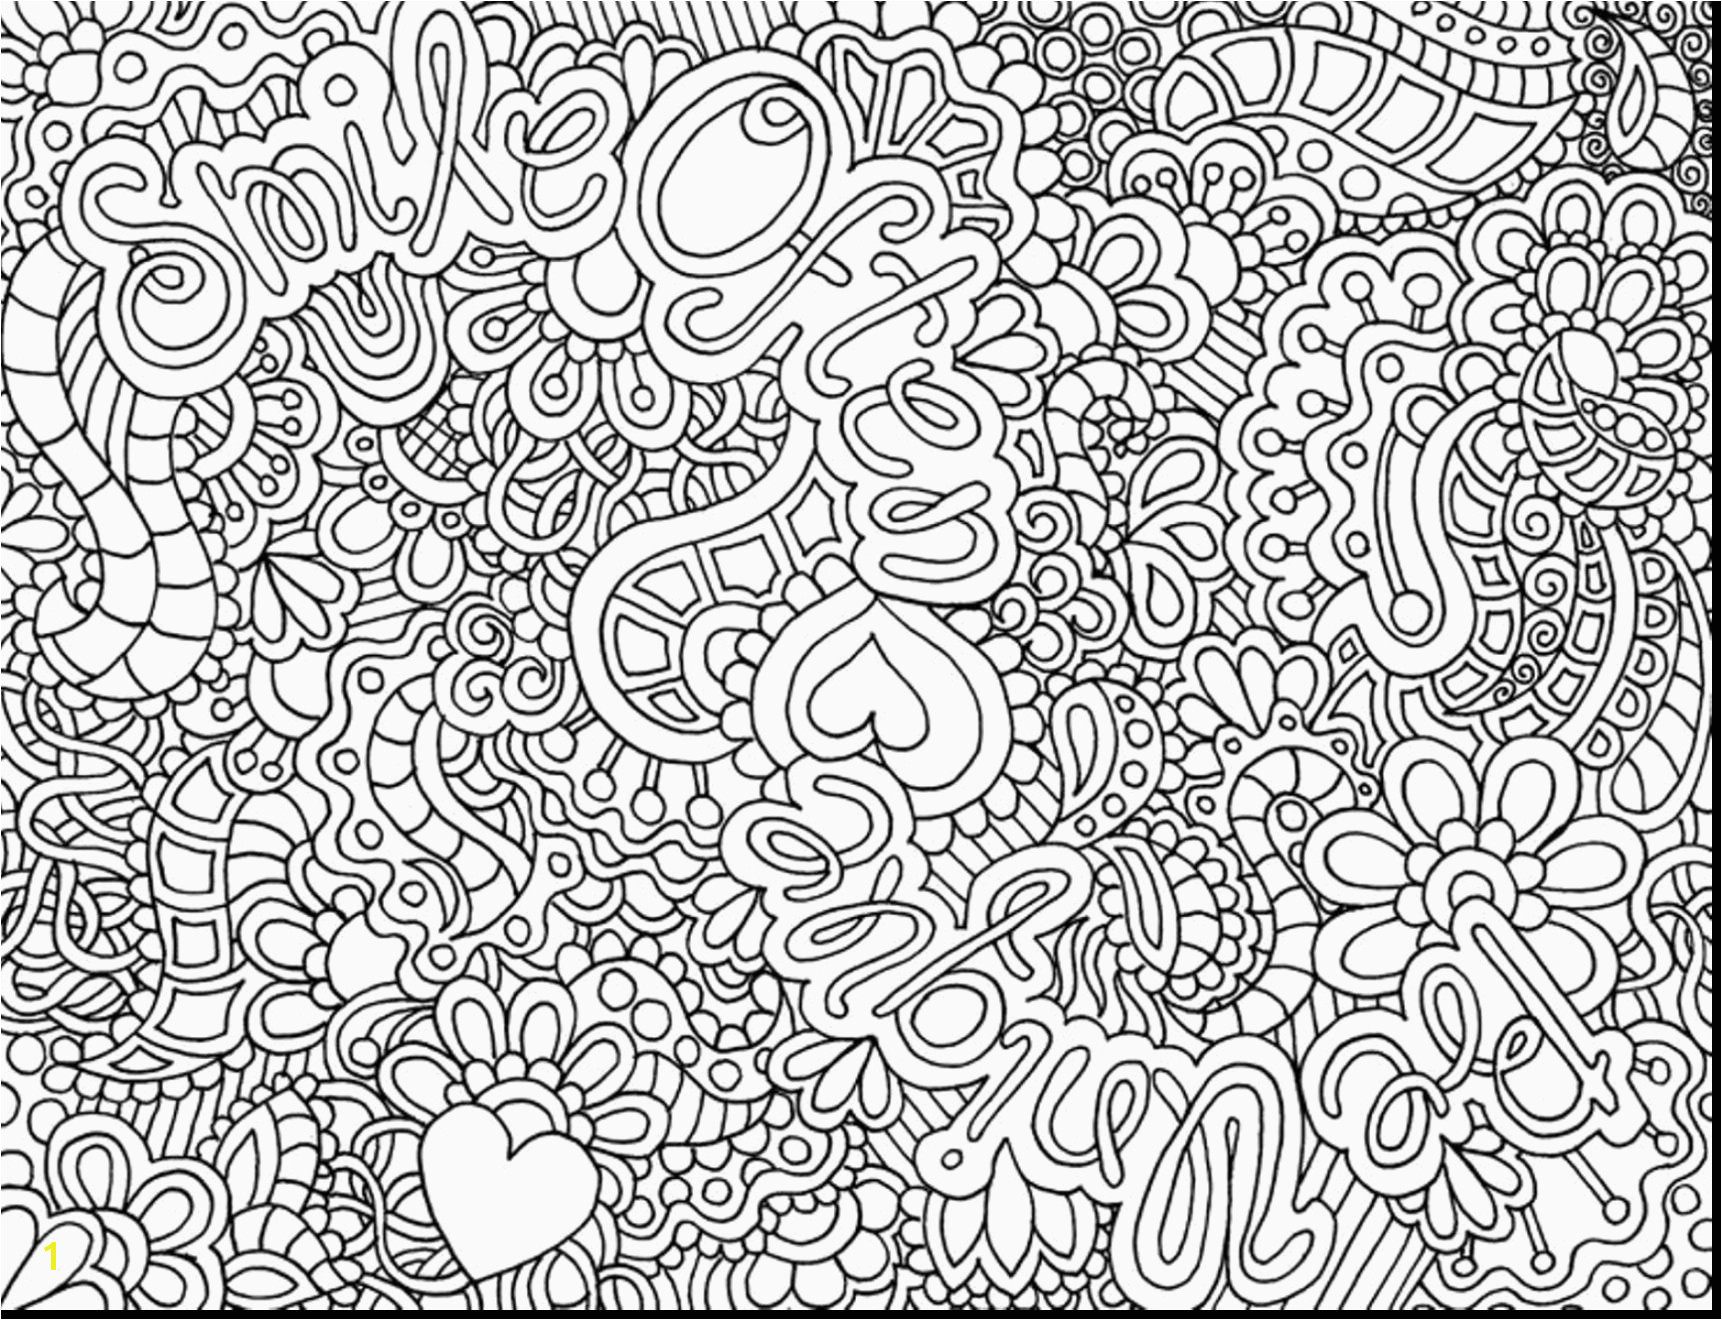 Abstract Coloring Pages for Teenagers Difficult Hard Abstract Coloring Pages for Teenagers 7a